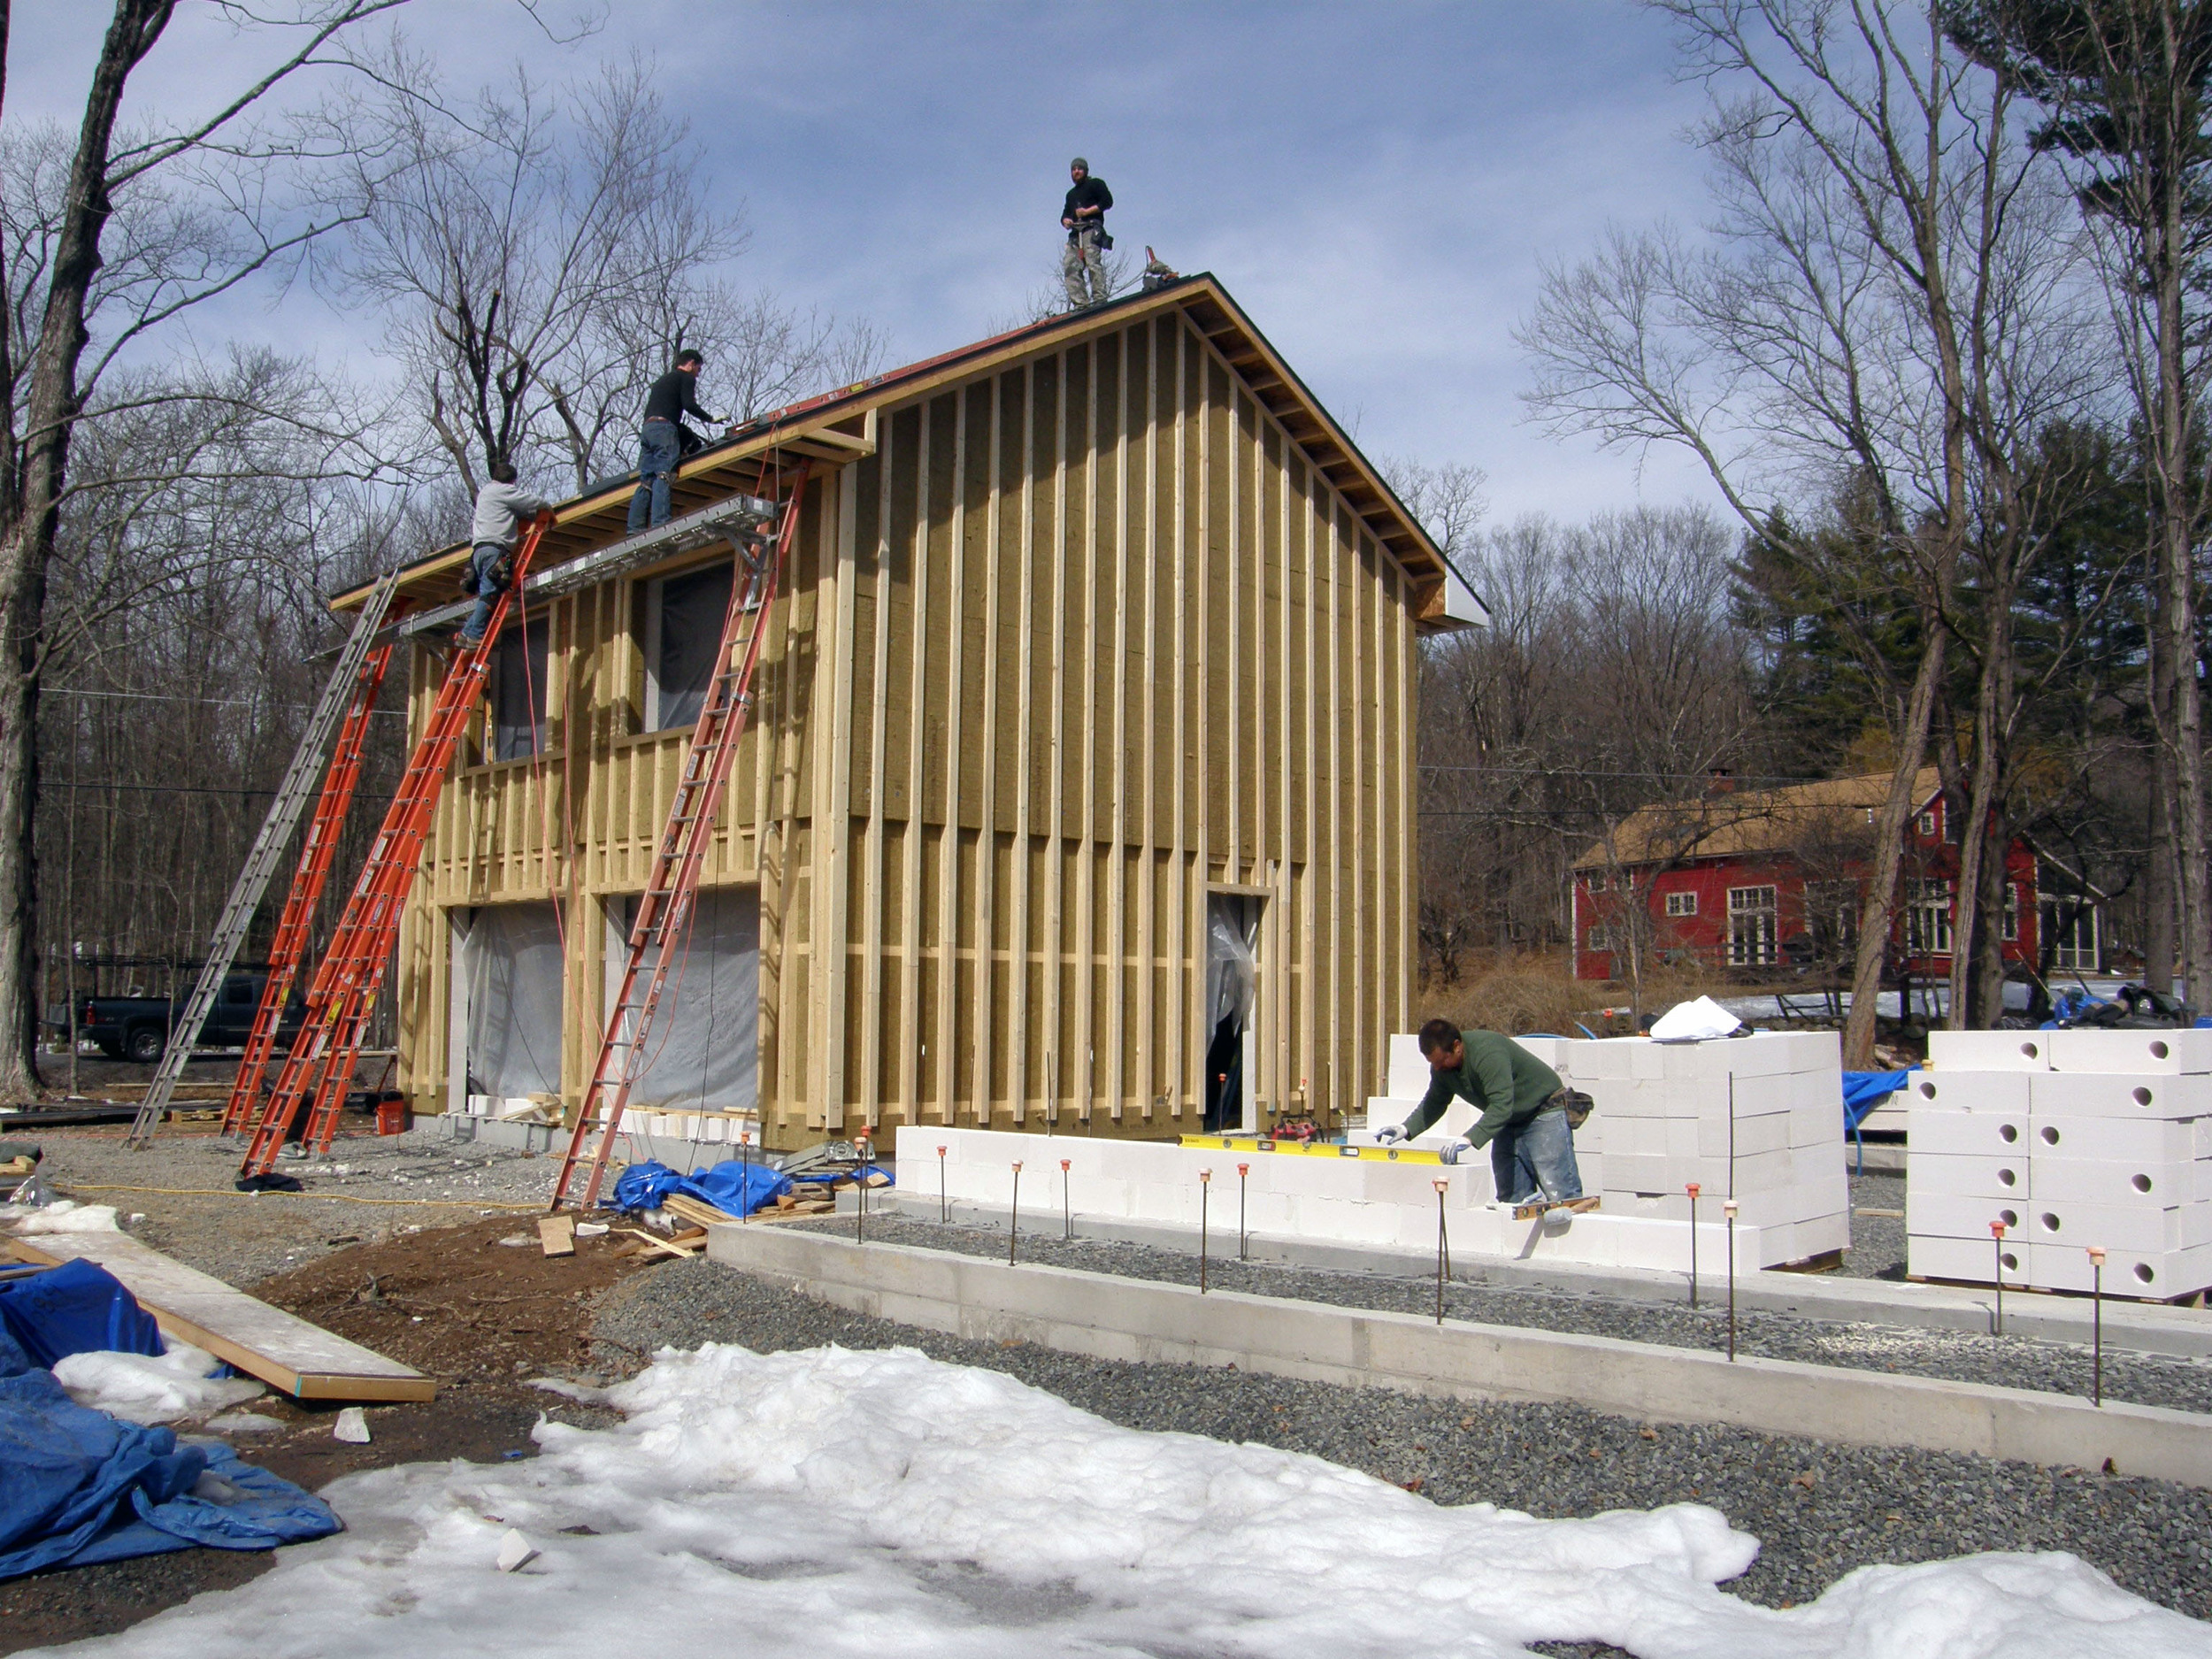 The garage is well underway, and the house is starting to be constructed.